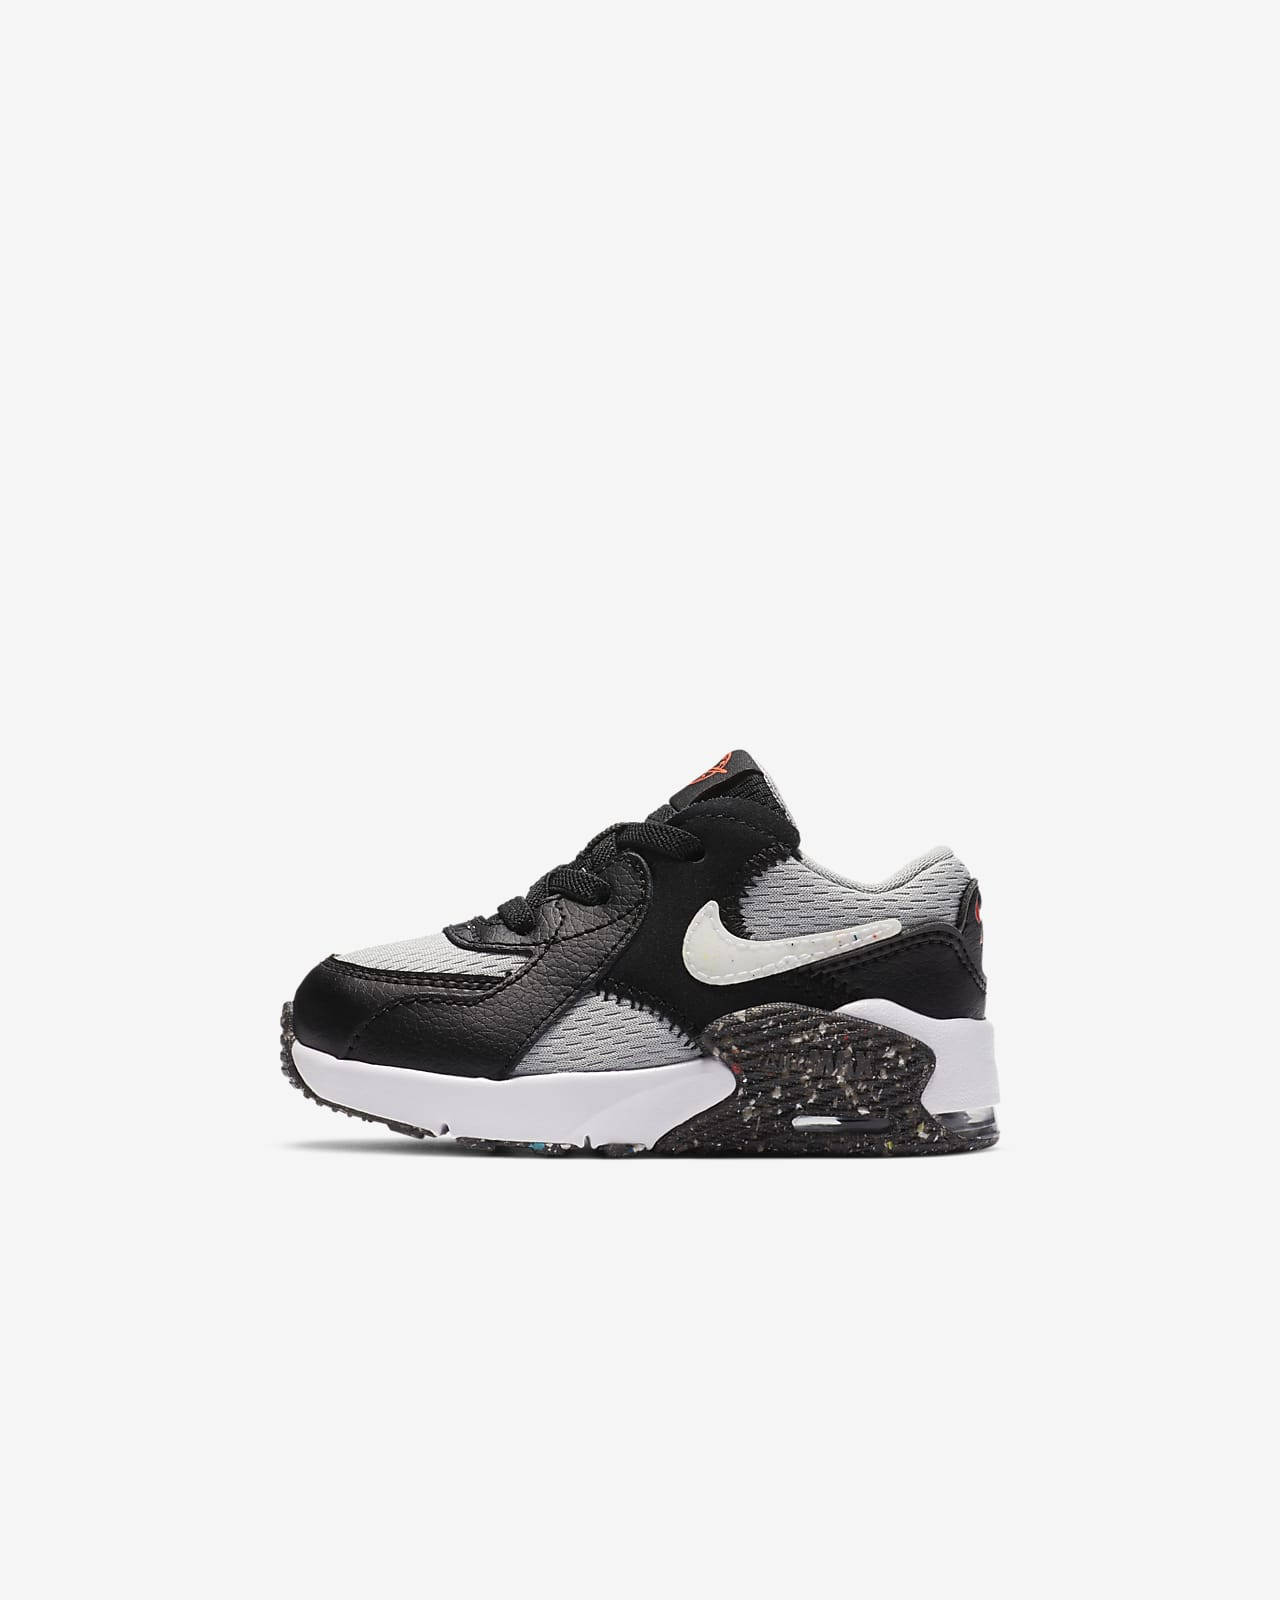 Nike Air Max Excee SE Baby/Toddler Shoe